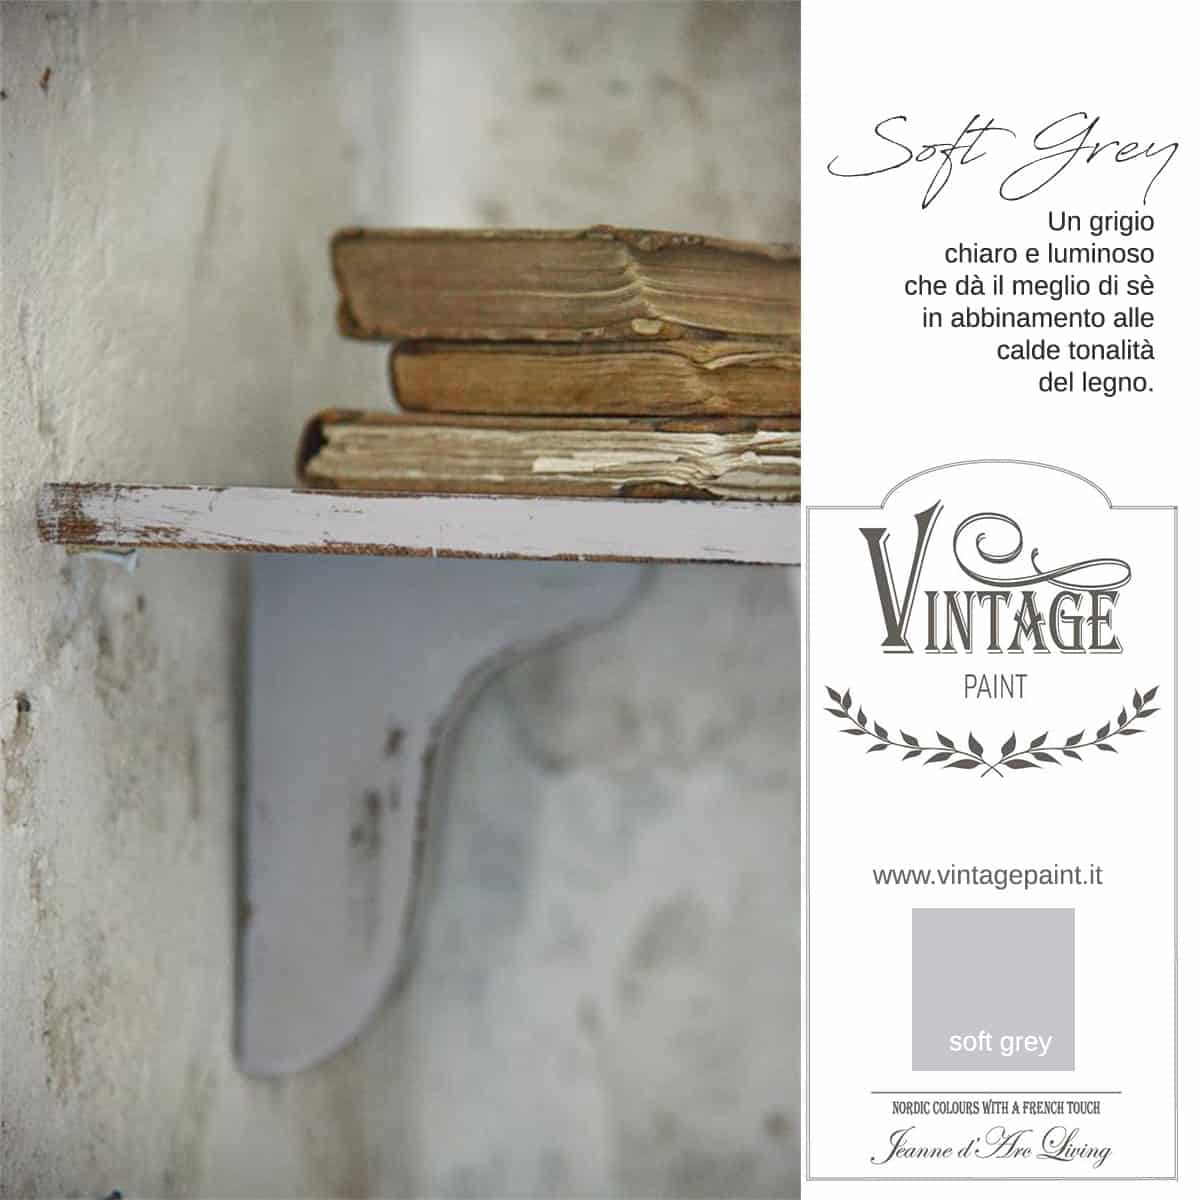 soft grey grigio vintage chalk paint vernici shabby chic autentico look gesso